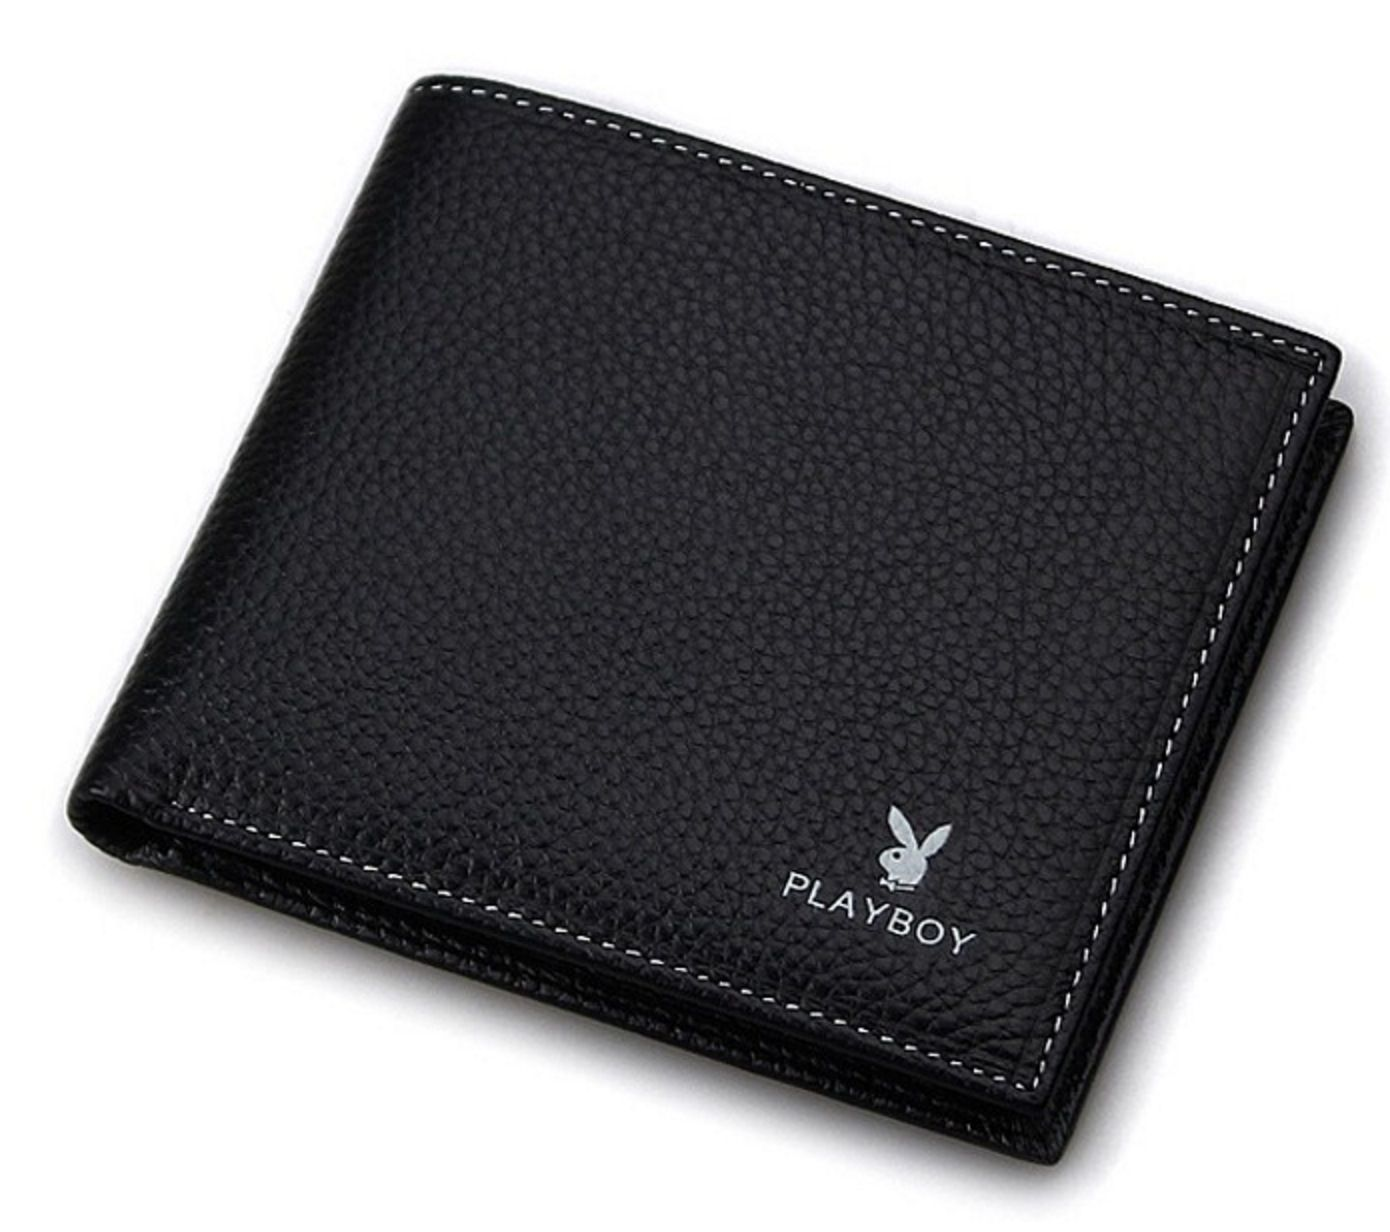 Carteira Masculina Executiva Couro PlayBoy Business wallet